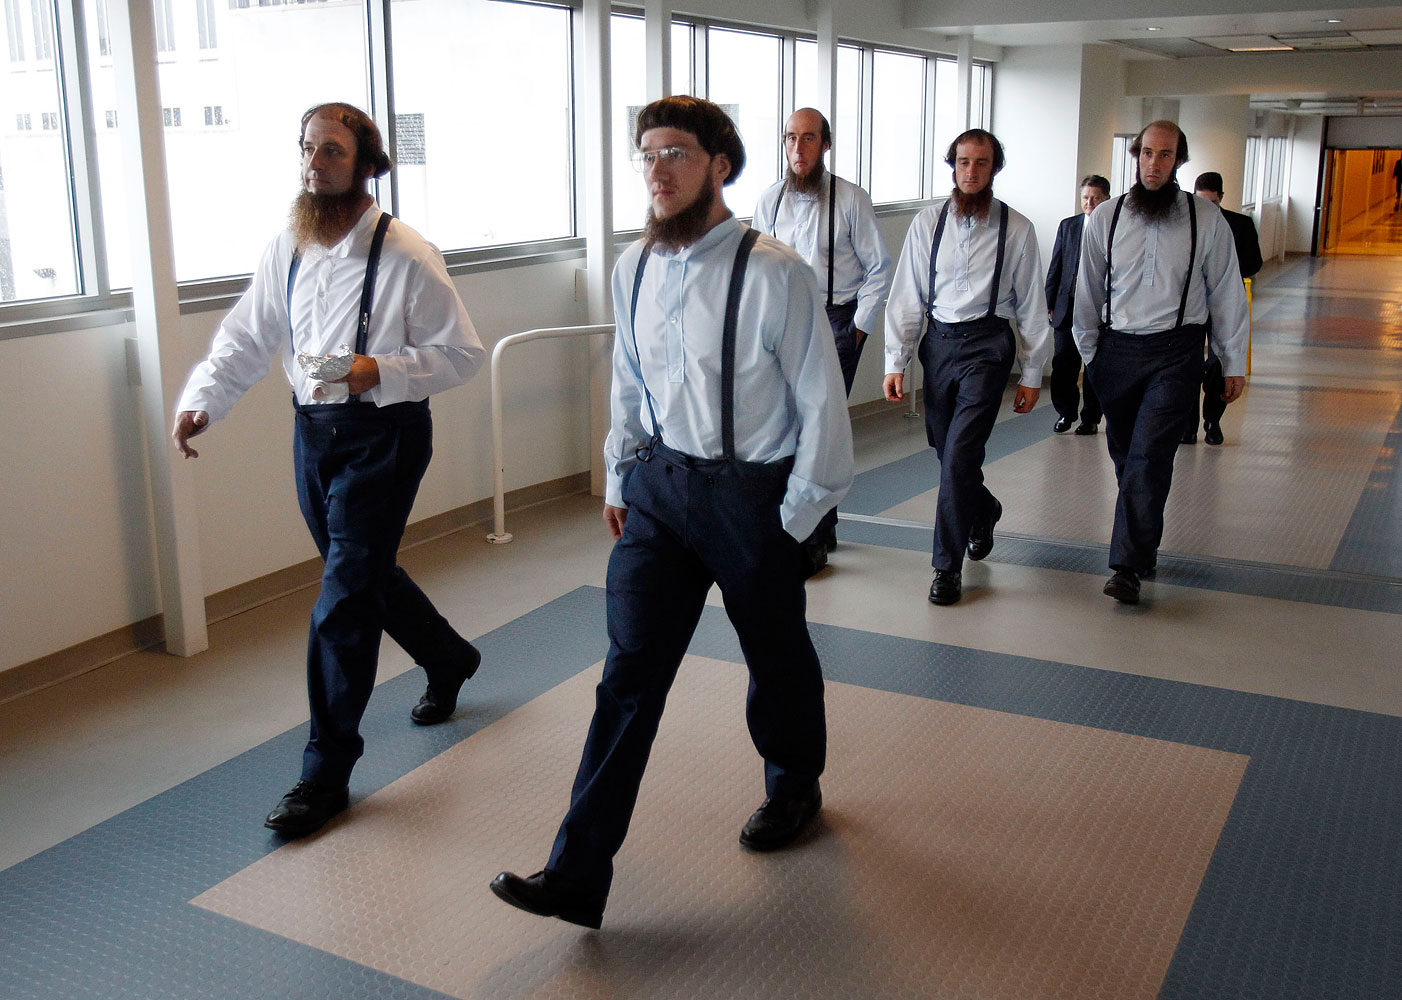 Members of the Amish community leave the Cleveland, Ohio federal courthouse during the trial of a breakaway Amish community in eastern Ohio, led by Samuel Mullet Sr., at the federal courthouse in Cleveland, Aug. 27, 2012.